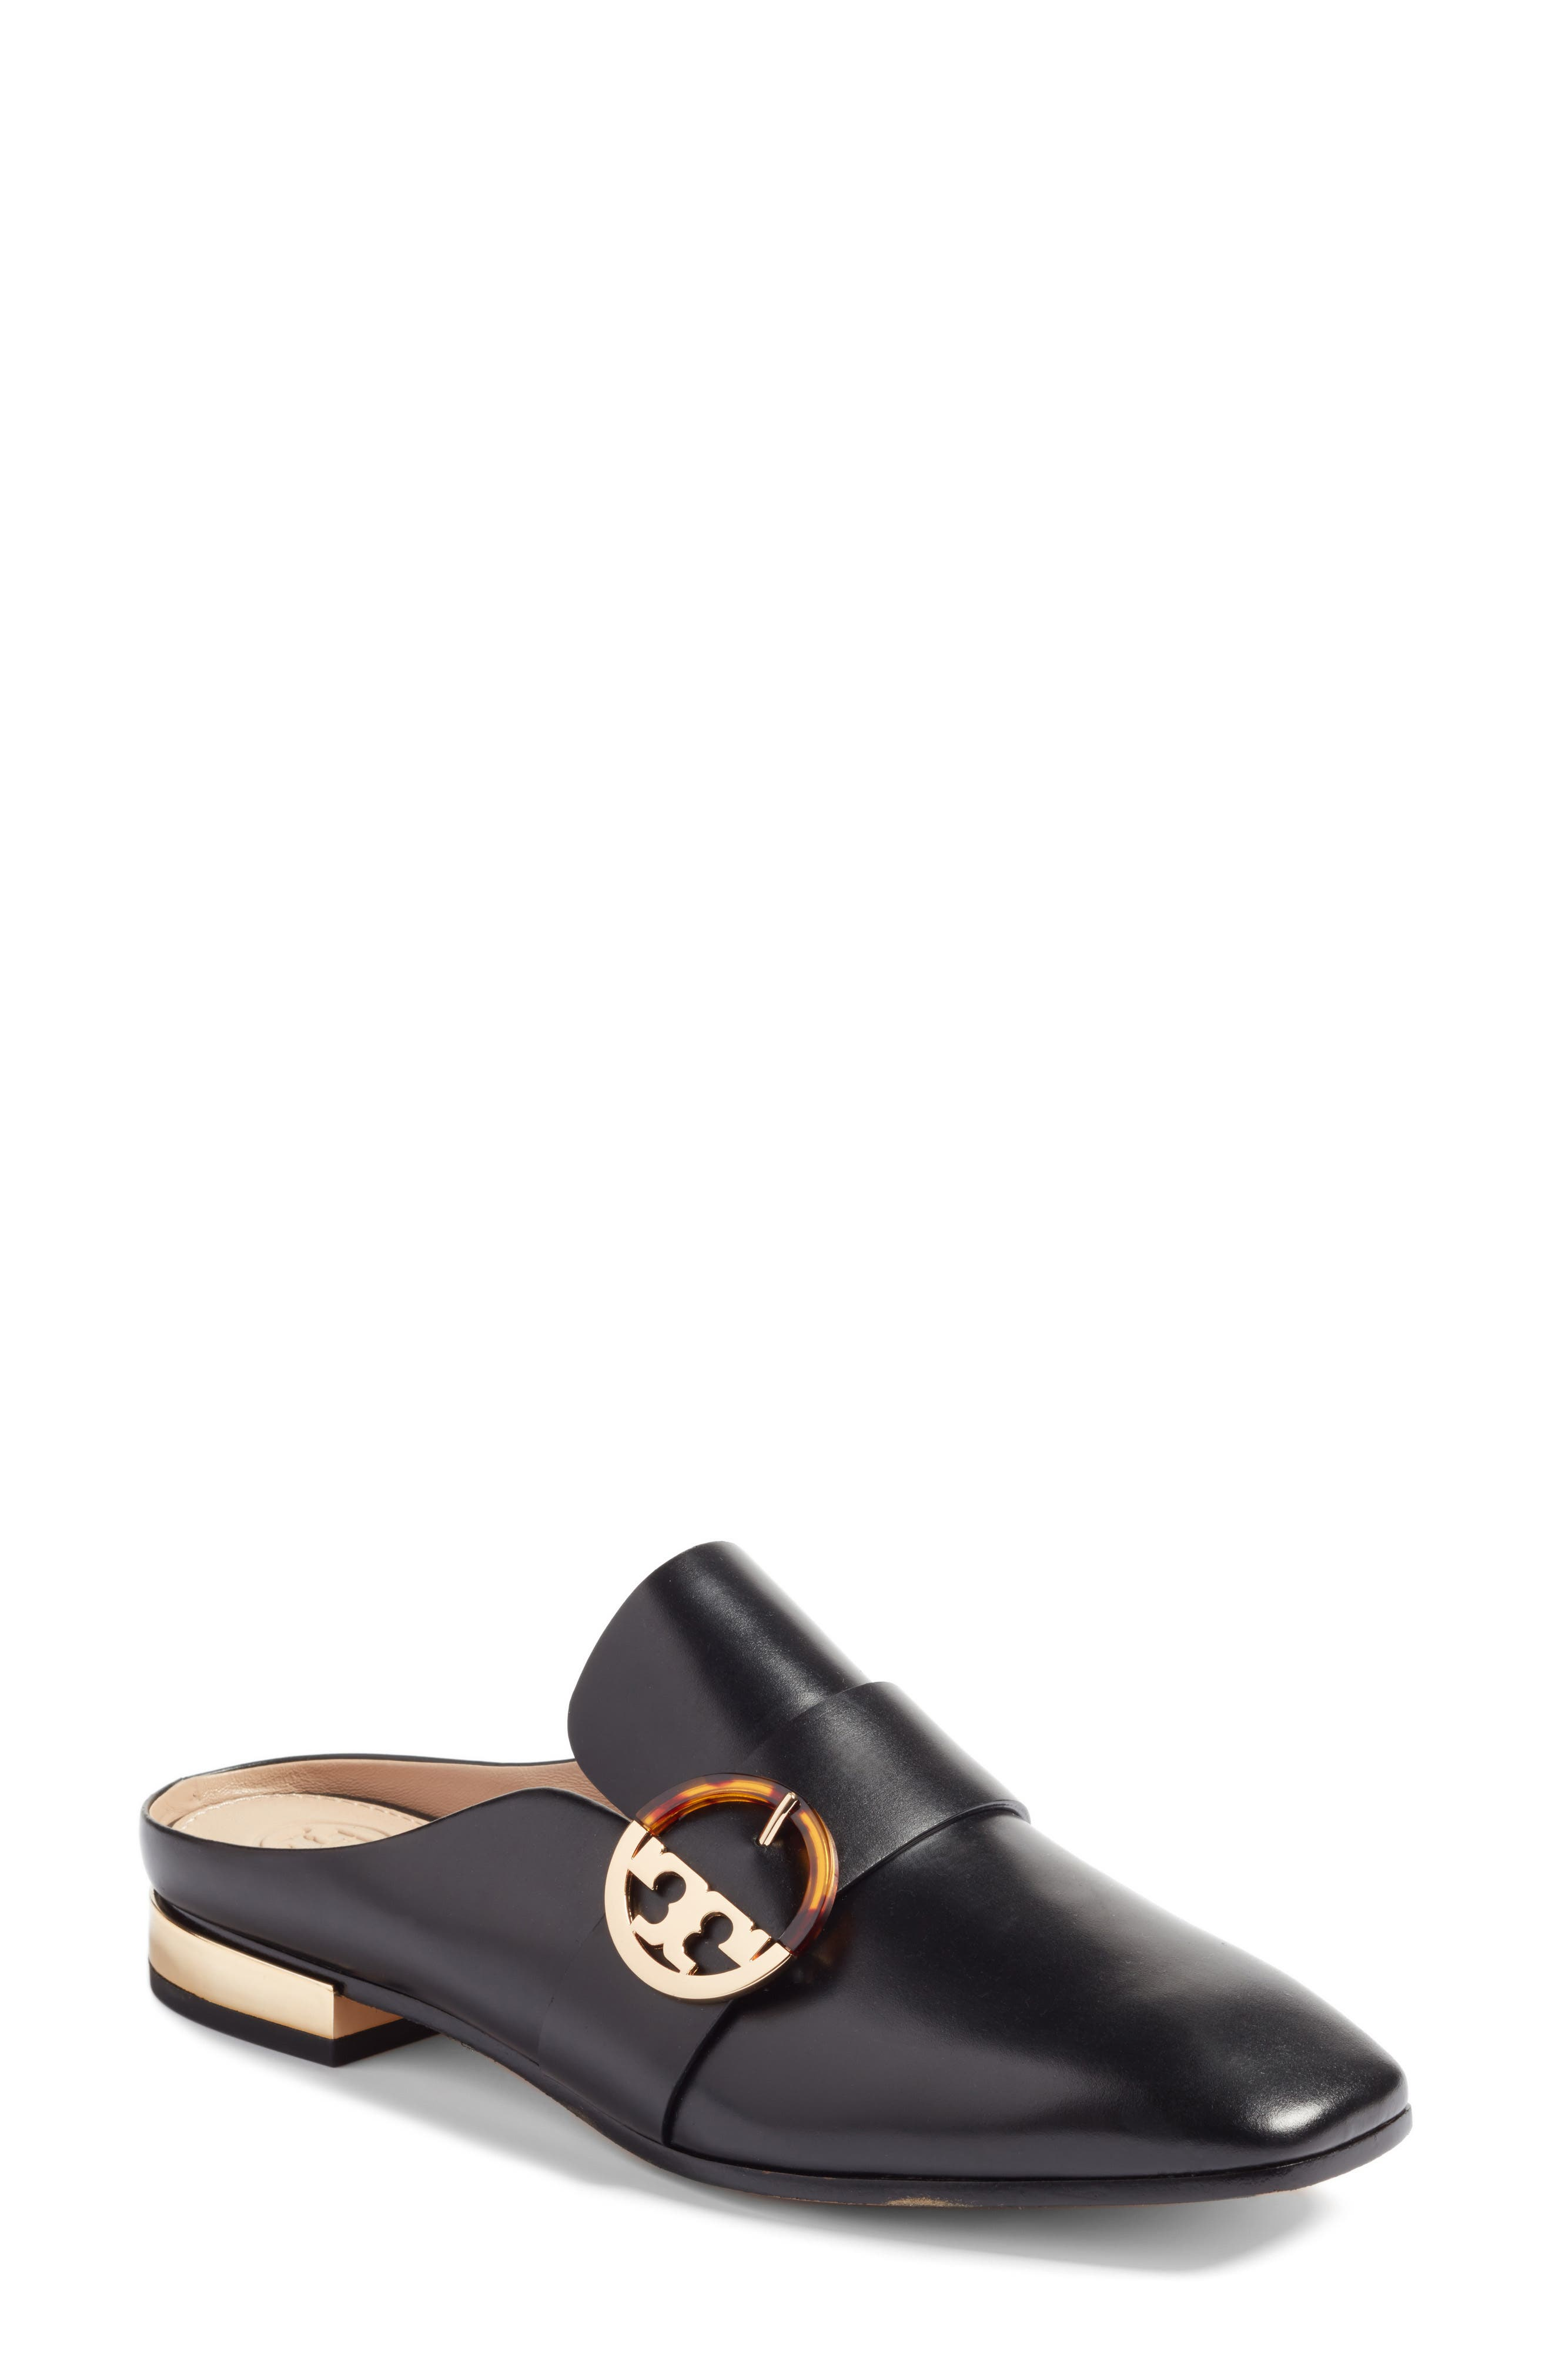 Sidney Backless Loafer,                             Main thumbnail 1, color,                             001